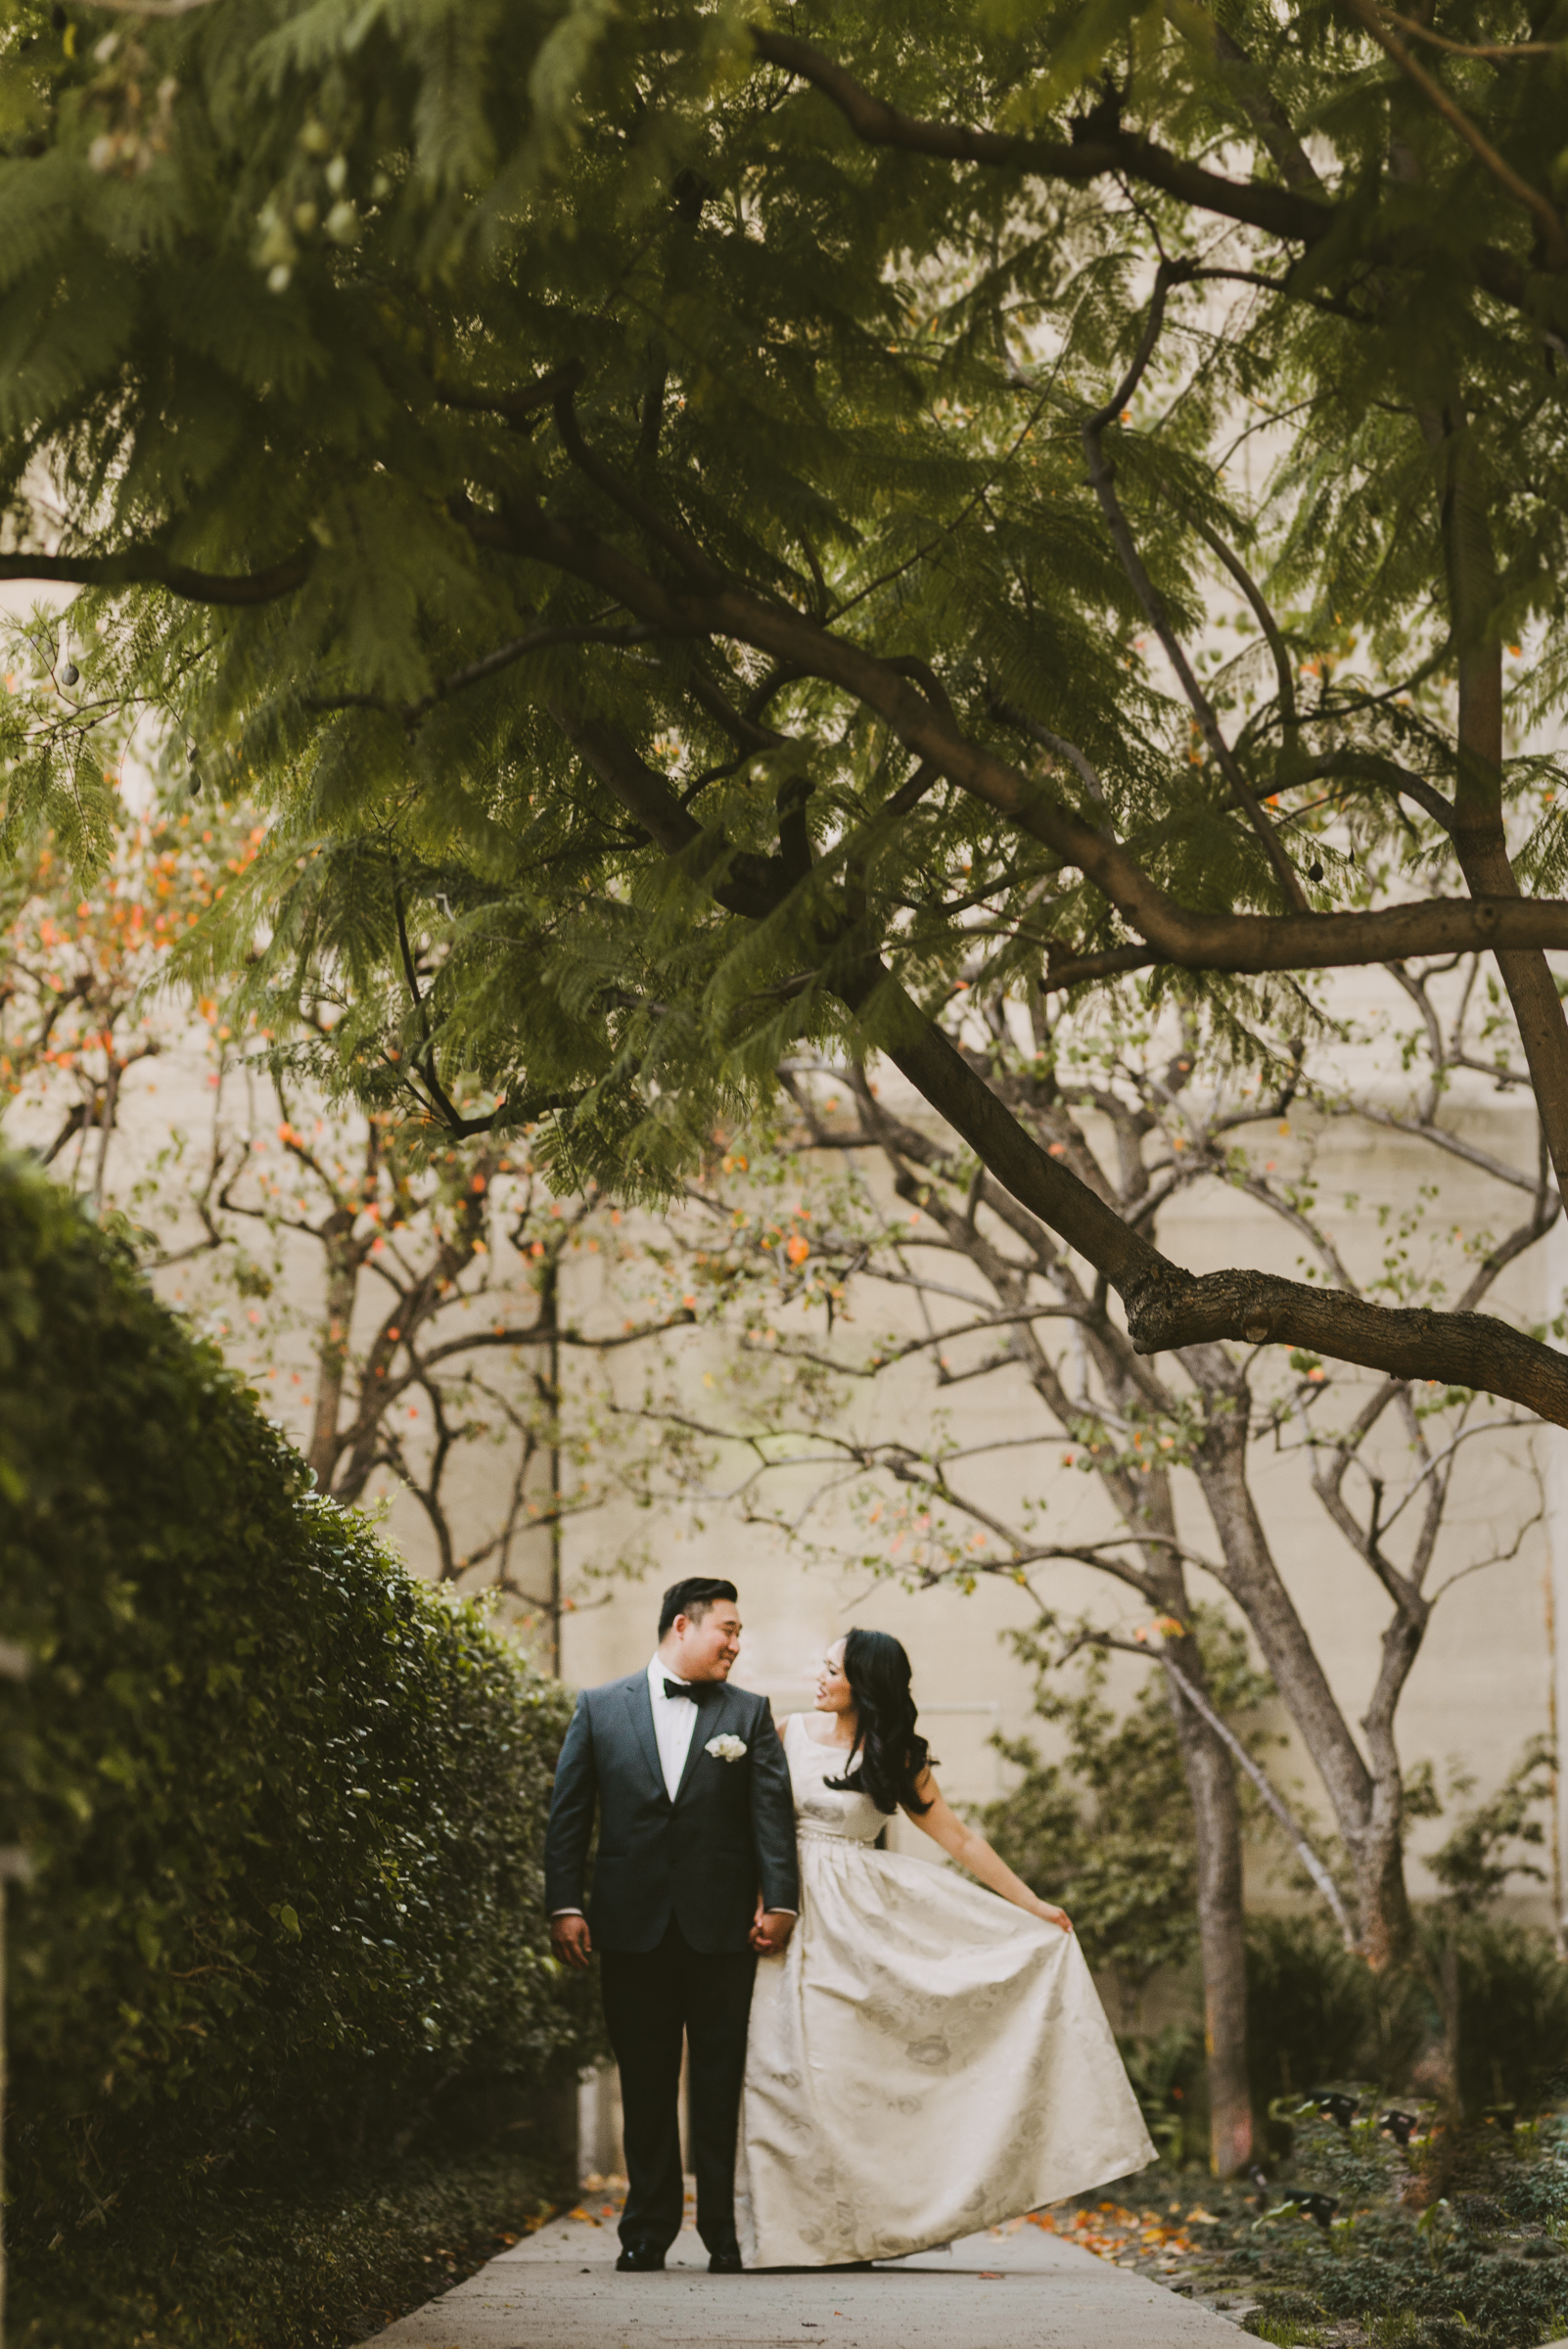 ©Isaiah + Taylor Photography - David + Grace - Wedding - 20170115 06794.jpg